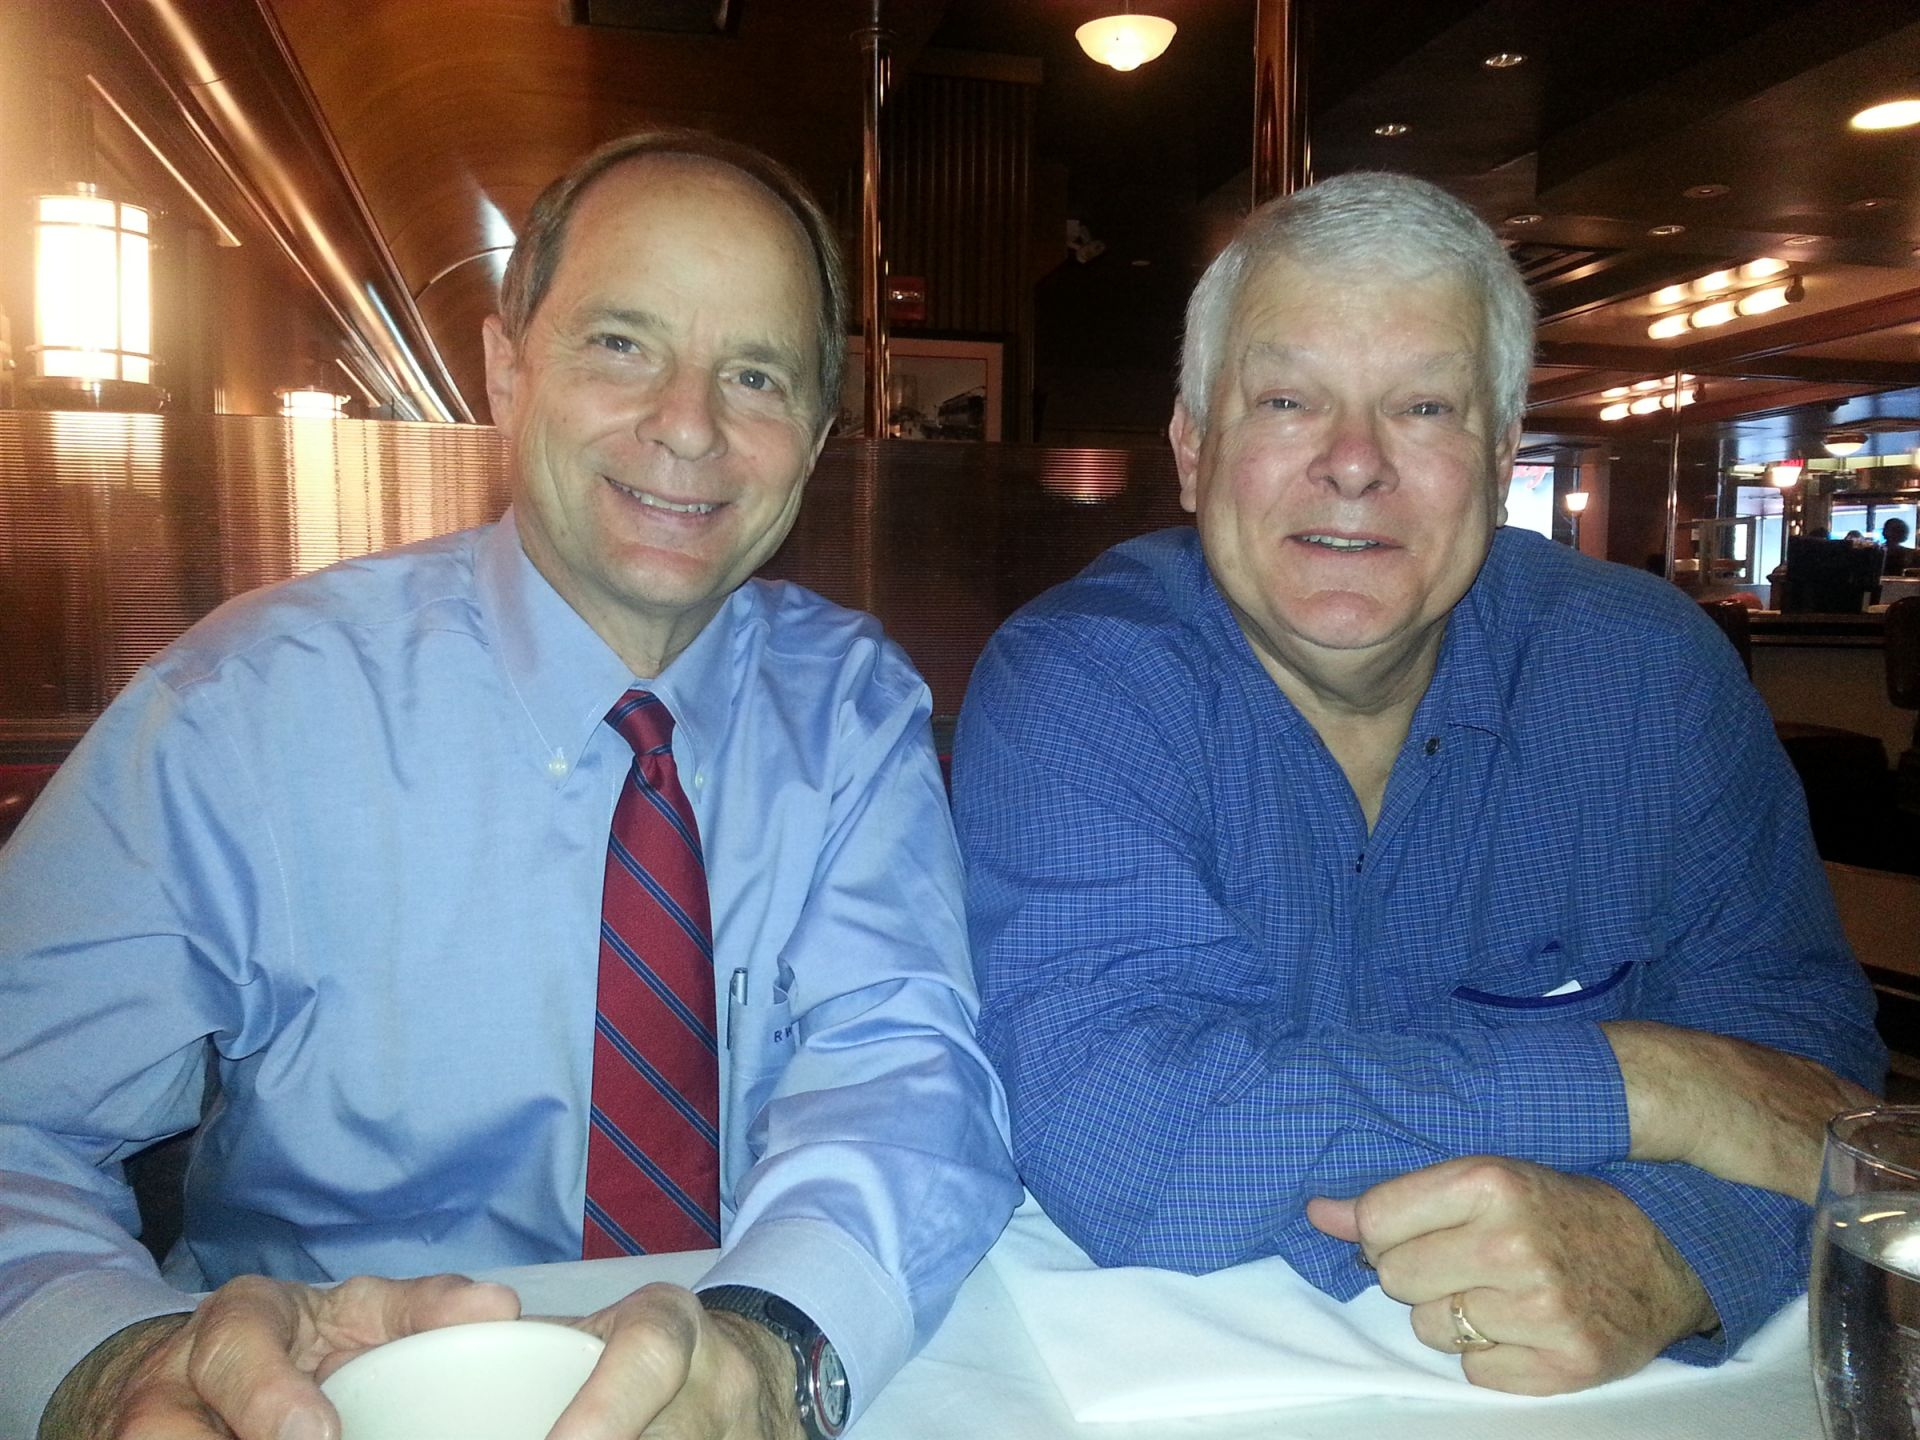 Rick Moulton '64 and Randy Judd '64 enjoying a meal at the Brooklyn Diner